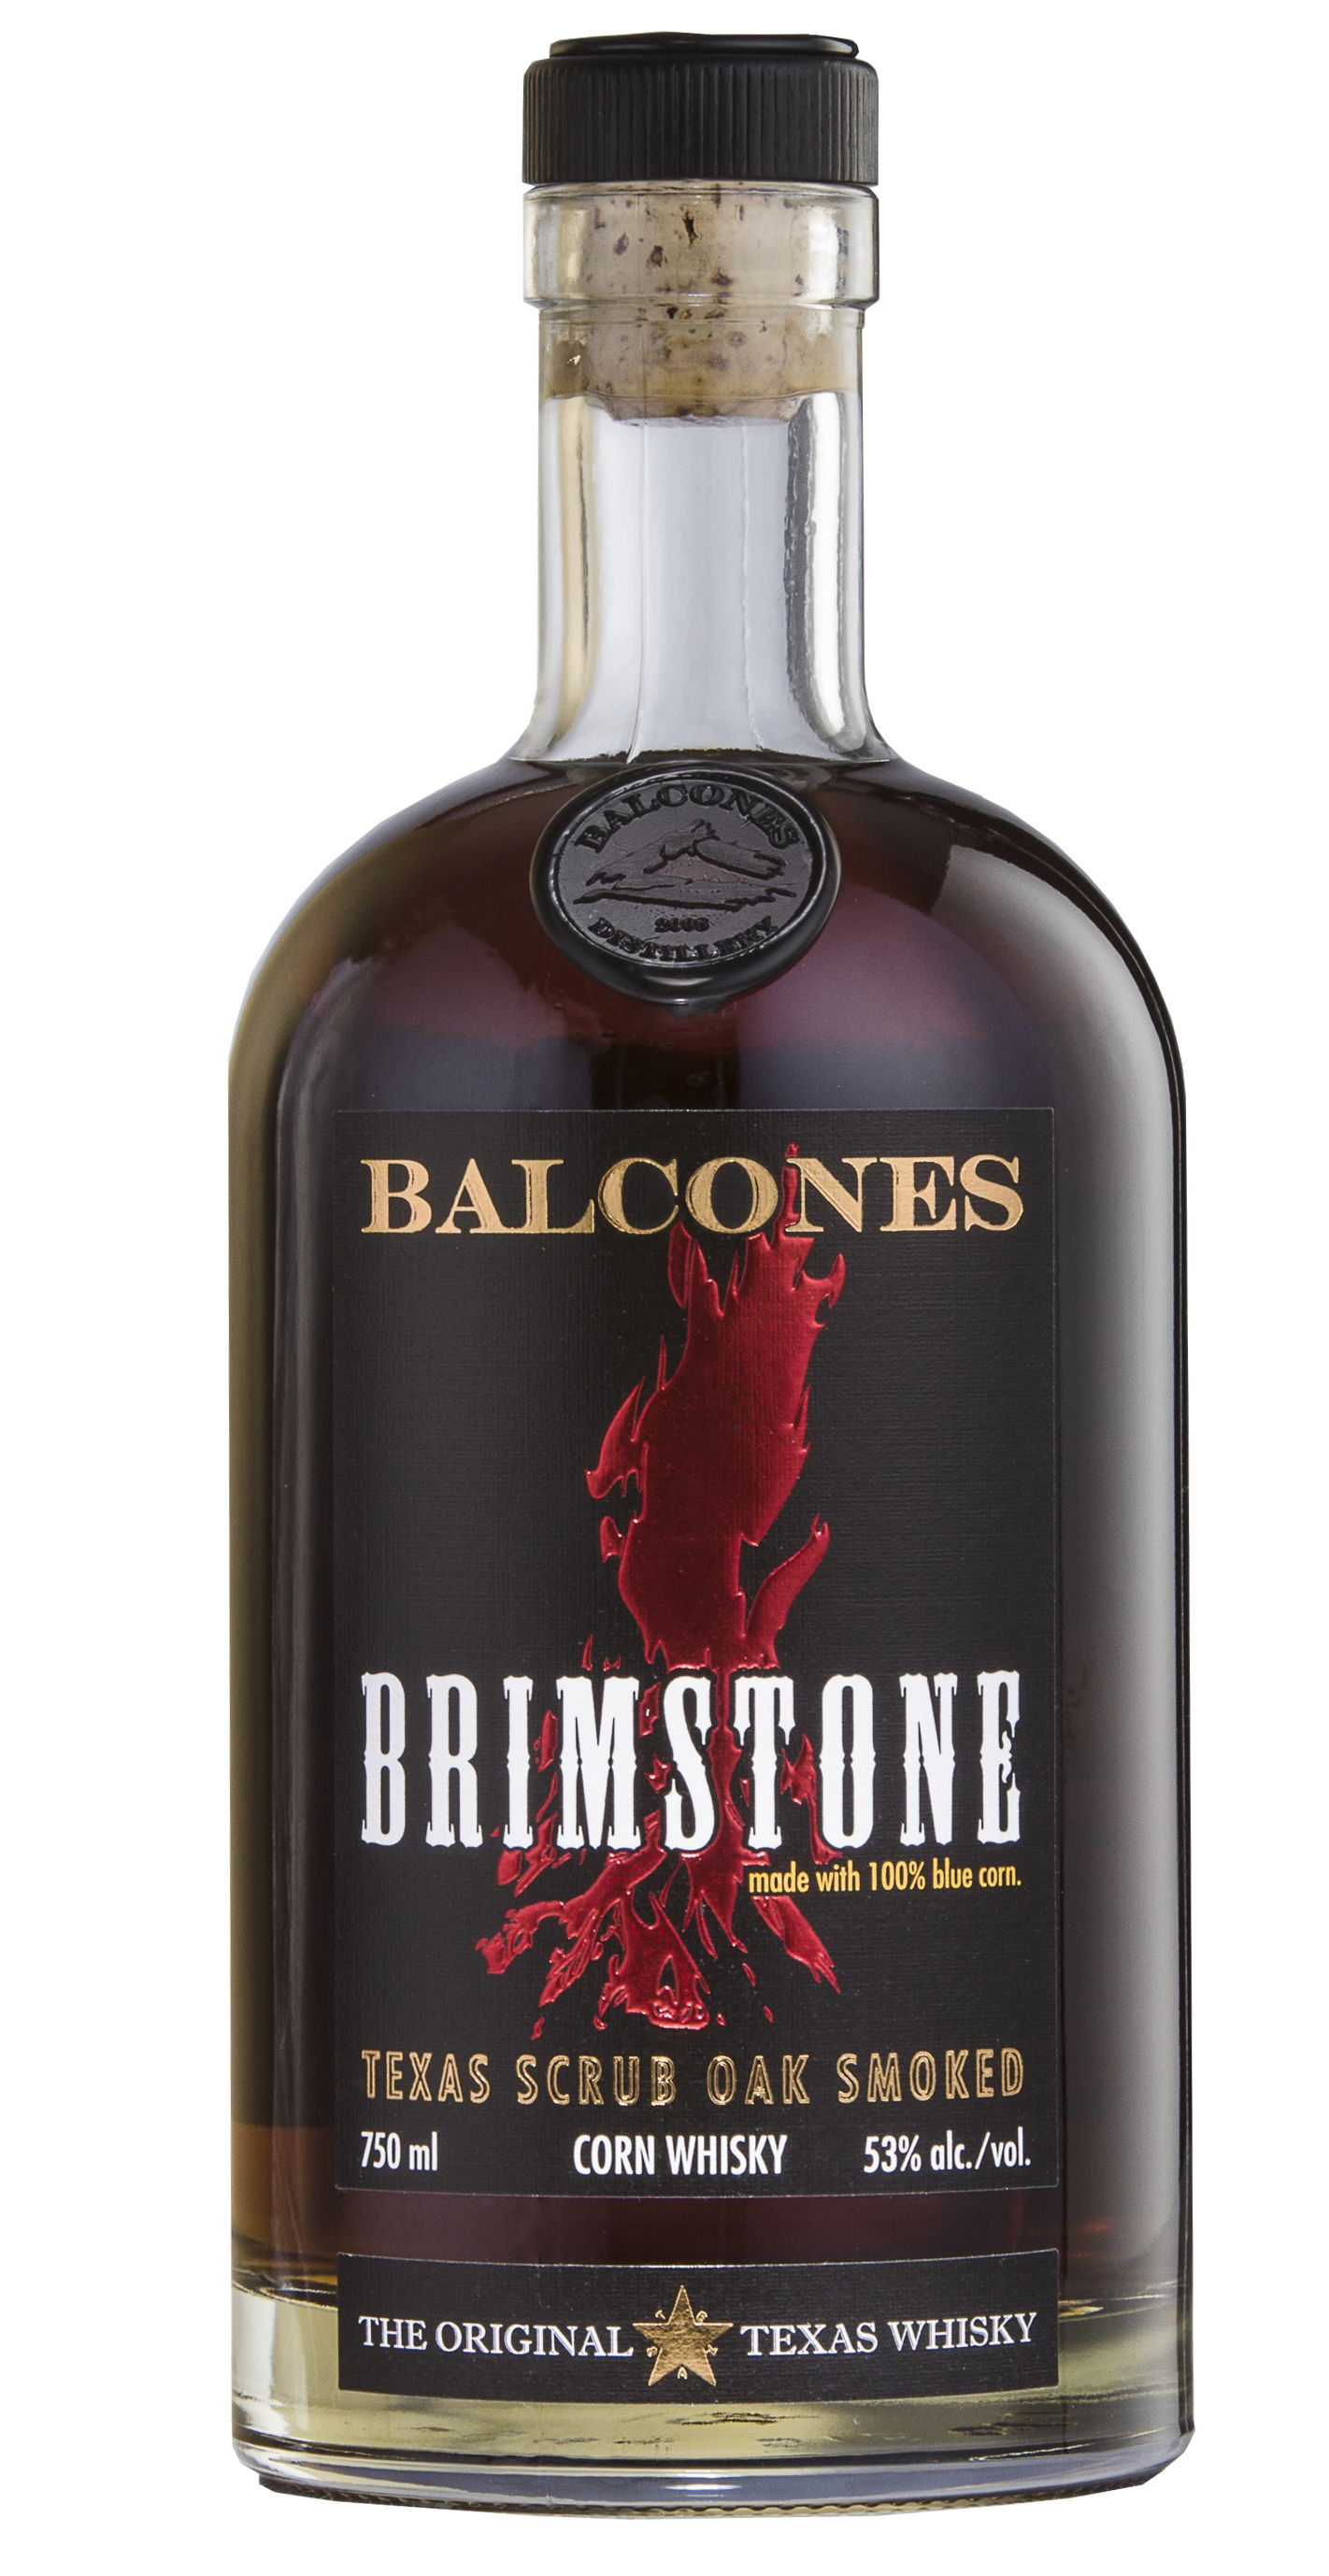 Balcones Brimstone Texas Scrub Oak Smoked Whisky Front Bottle Shot